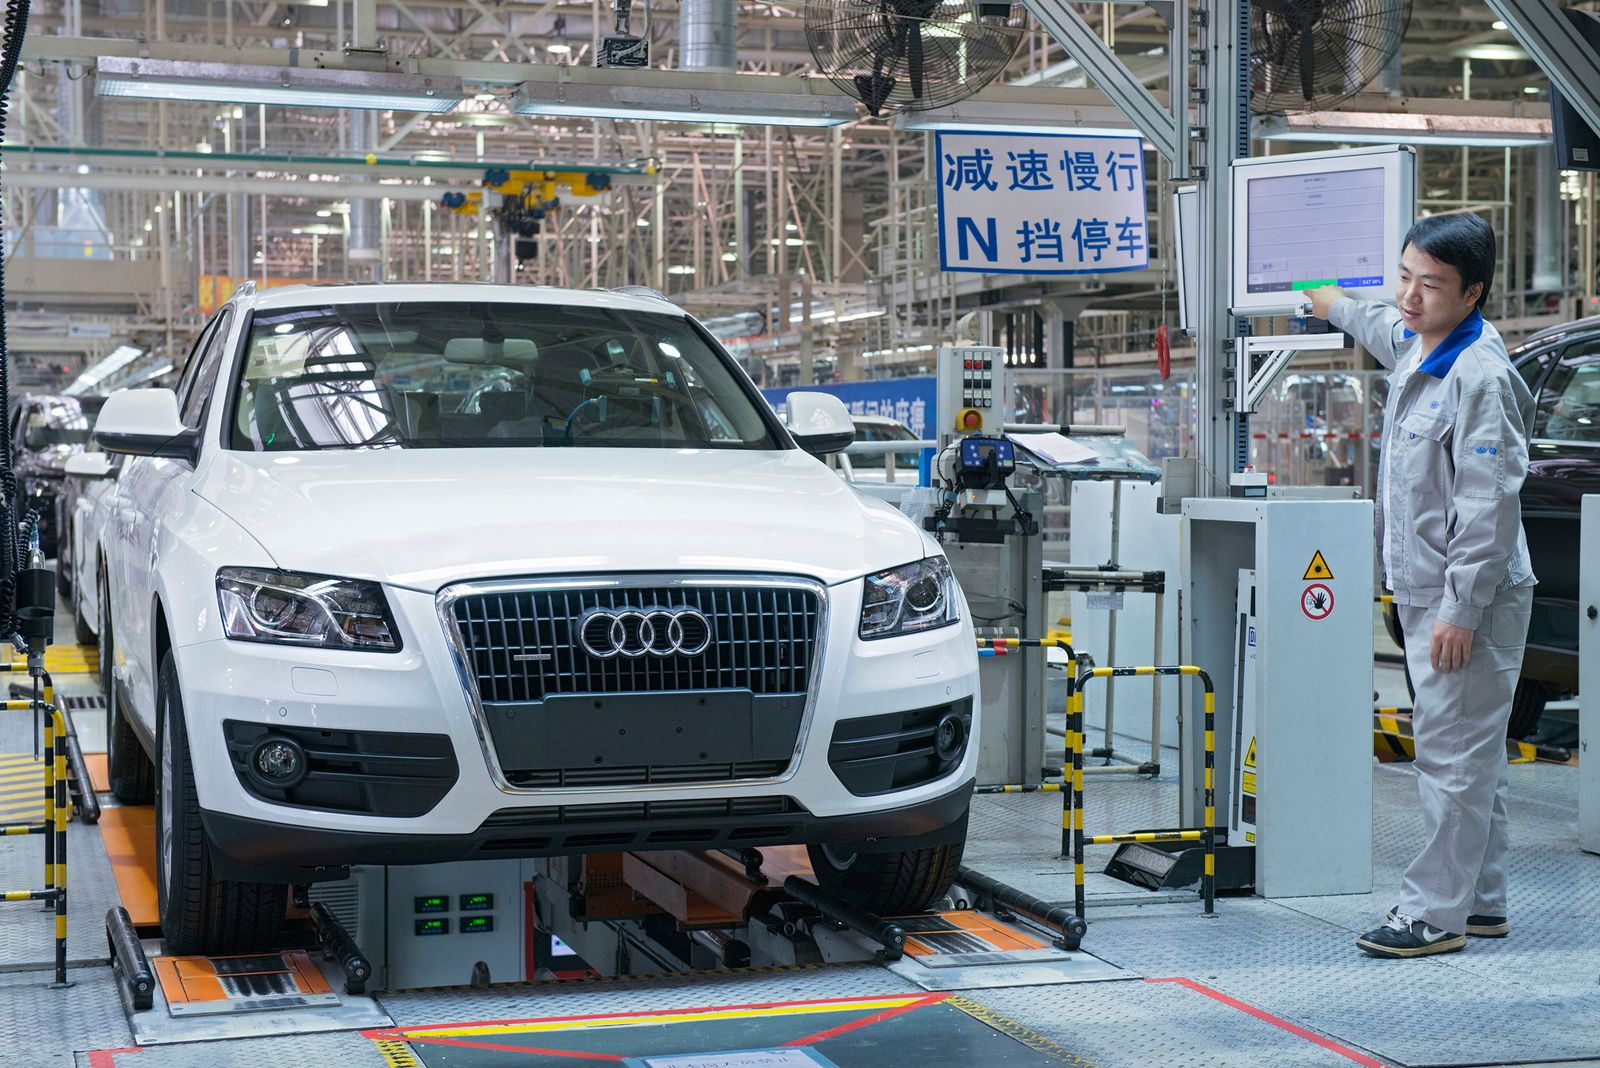 Audi / Standort Changchun / China